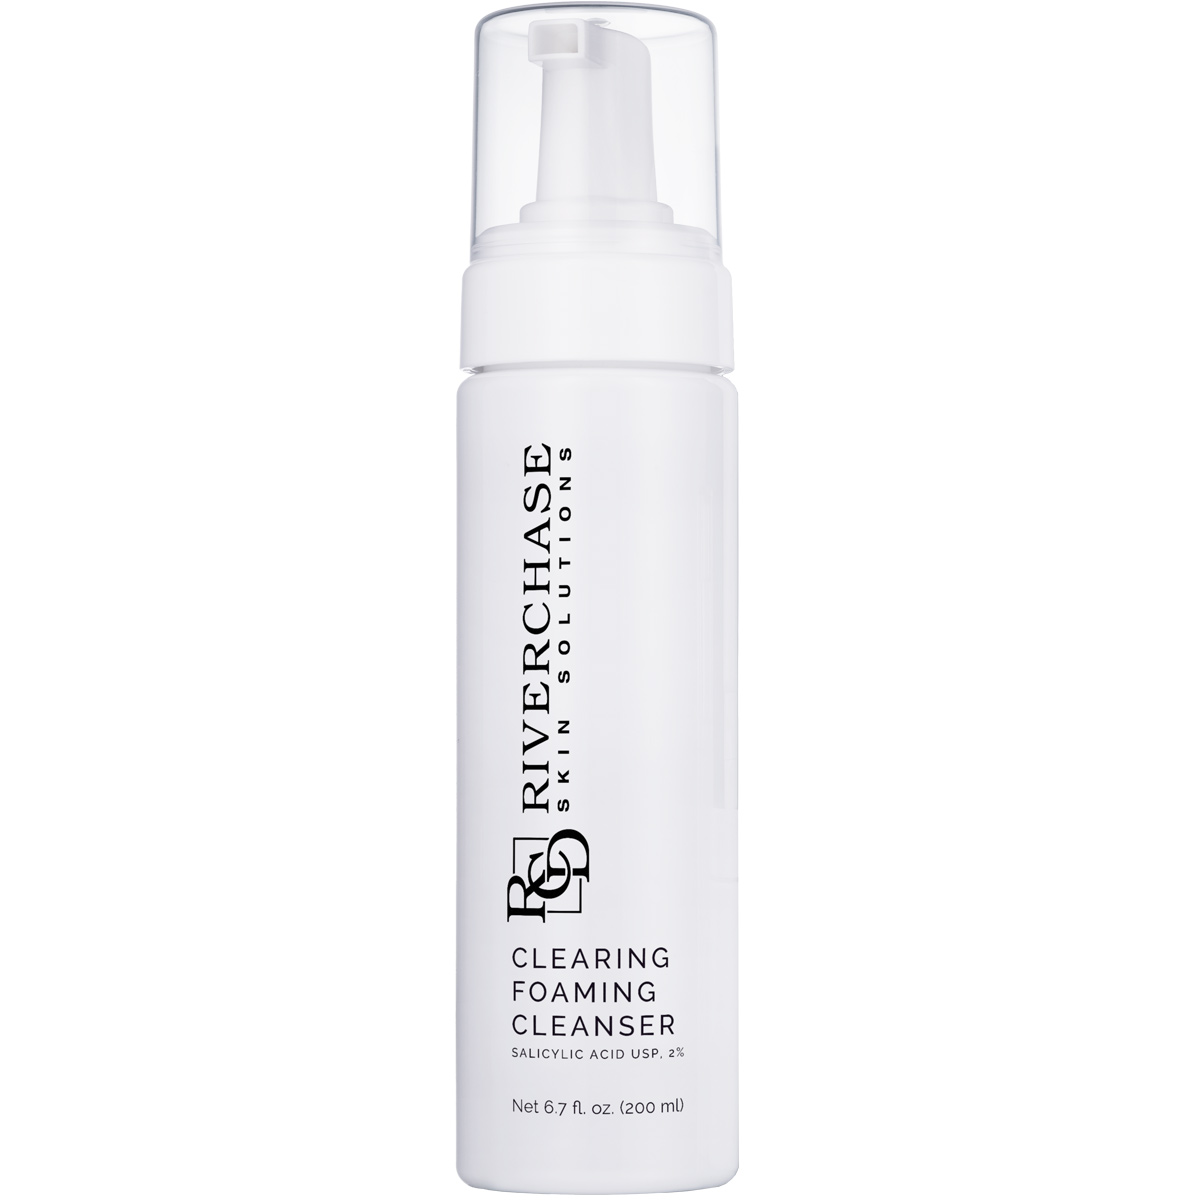 Clearing Foaming Cleanser